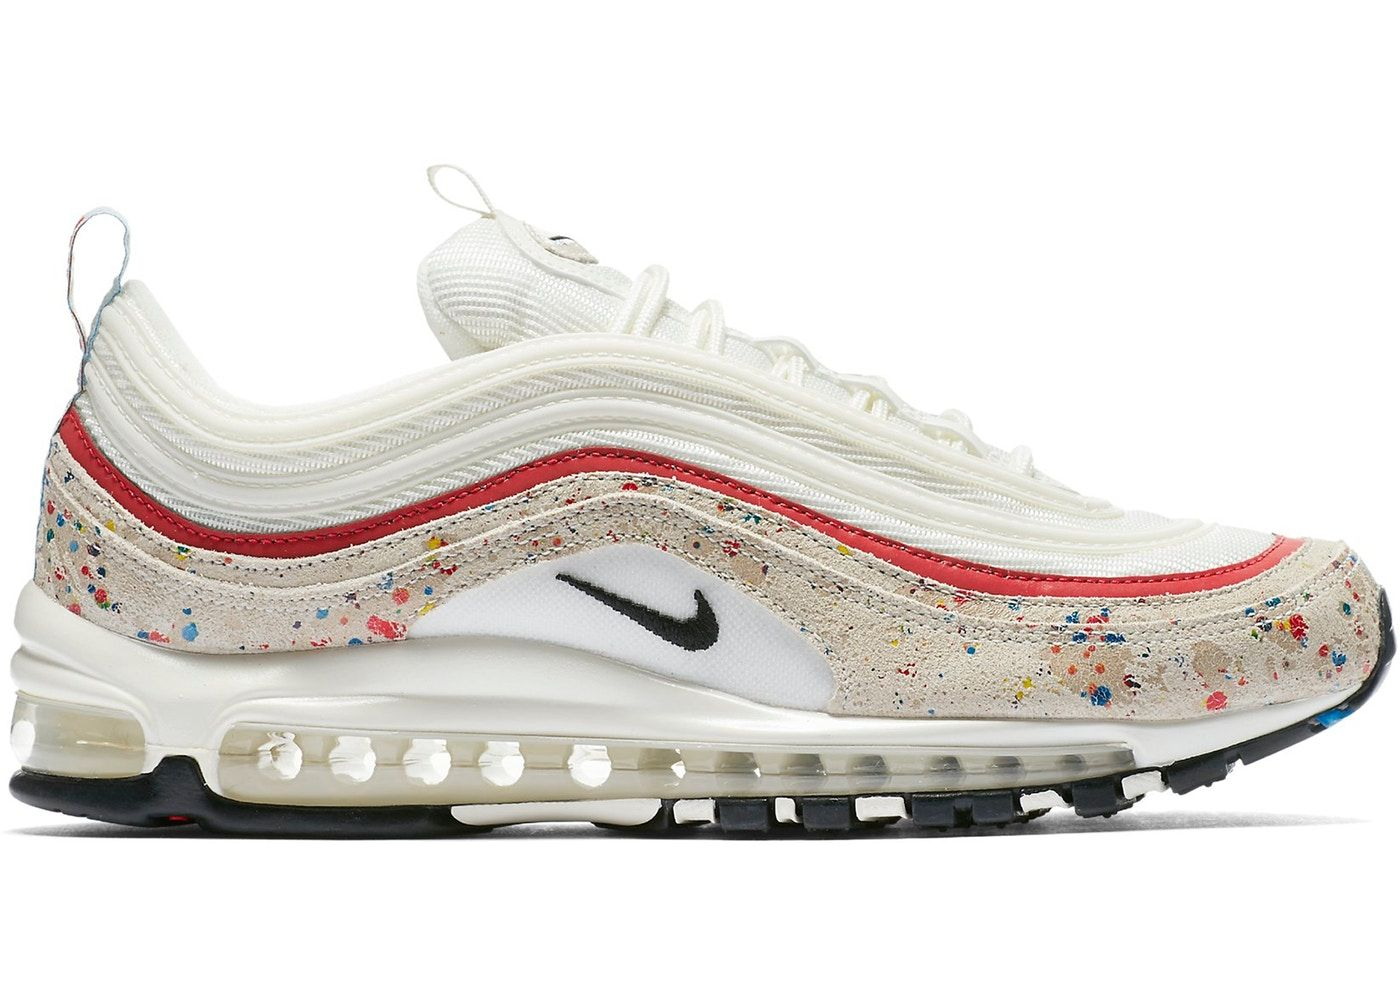 b525f9a5 Nike 97 Paint Splatter in 2019 | Shoes | Air max, Air max 97 ...